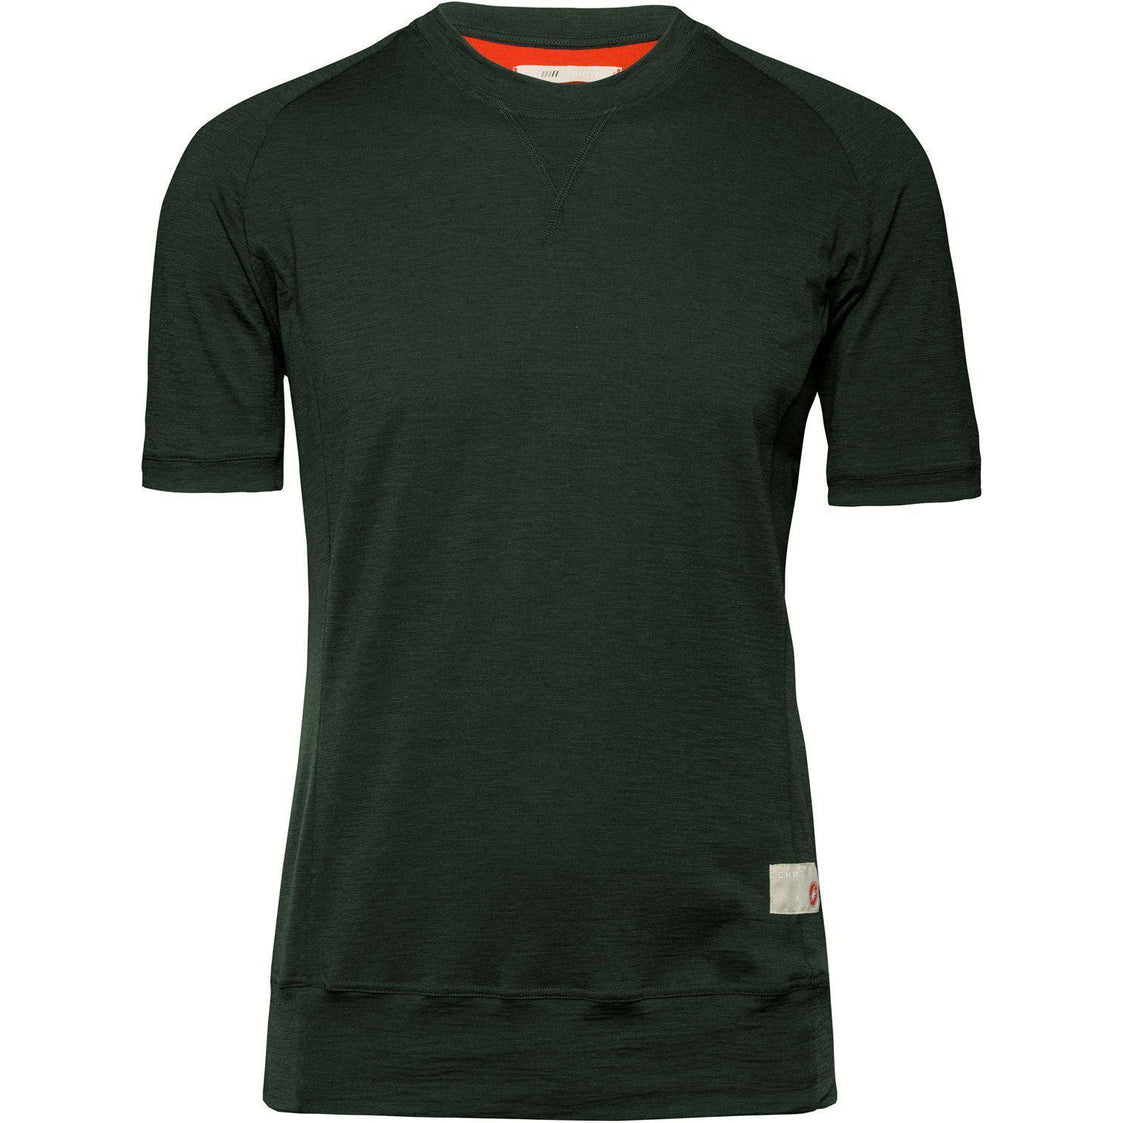 Chpt3 by Castelli Short Sleeve Winter Base Layer 1.84